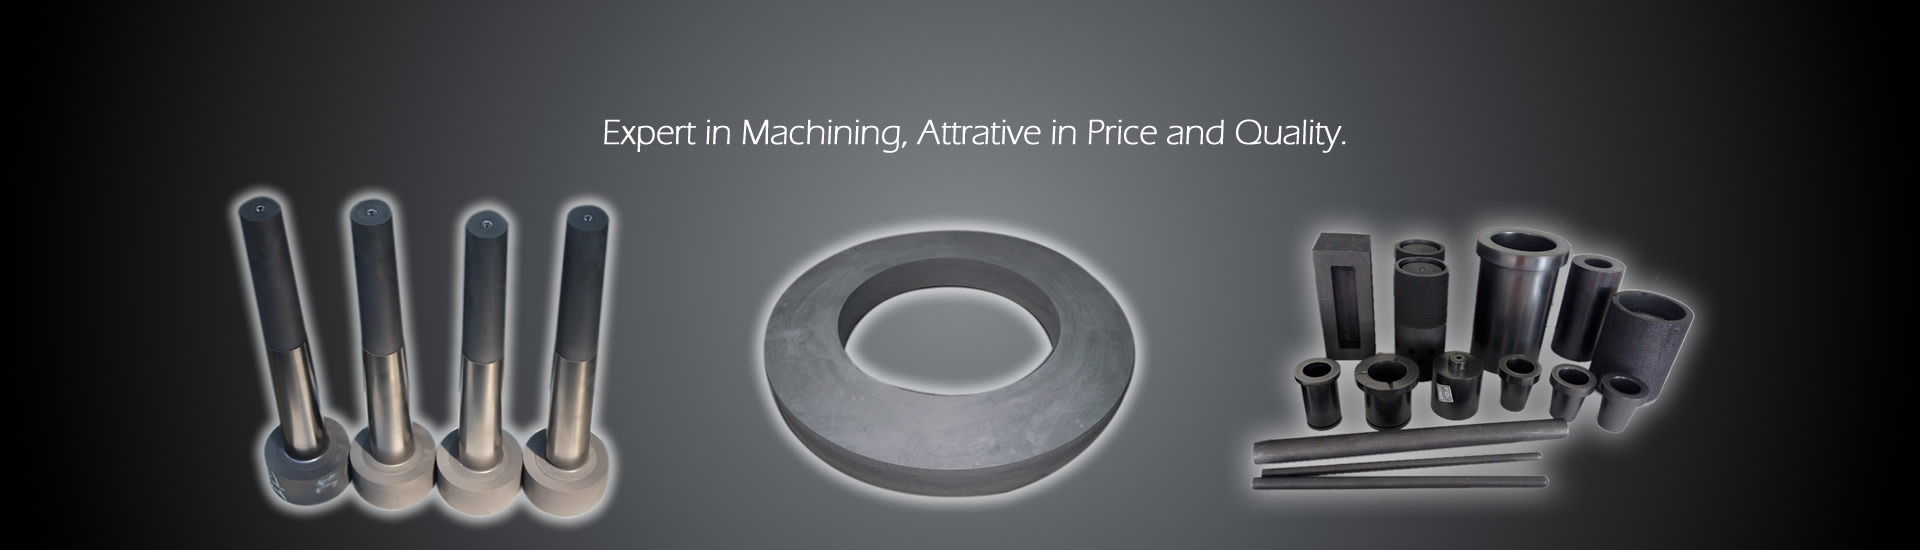 Expert in Machining, Attrative in Price and Quality.